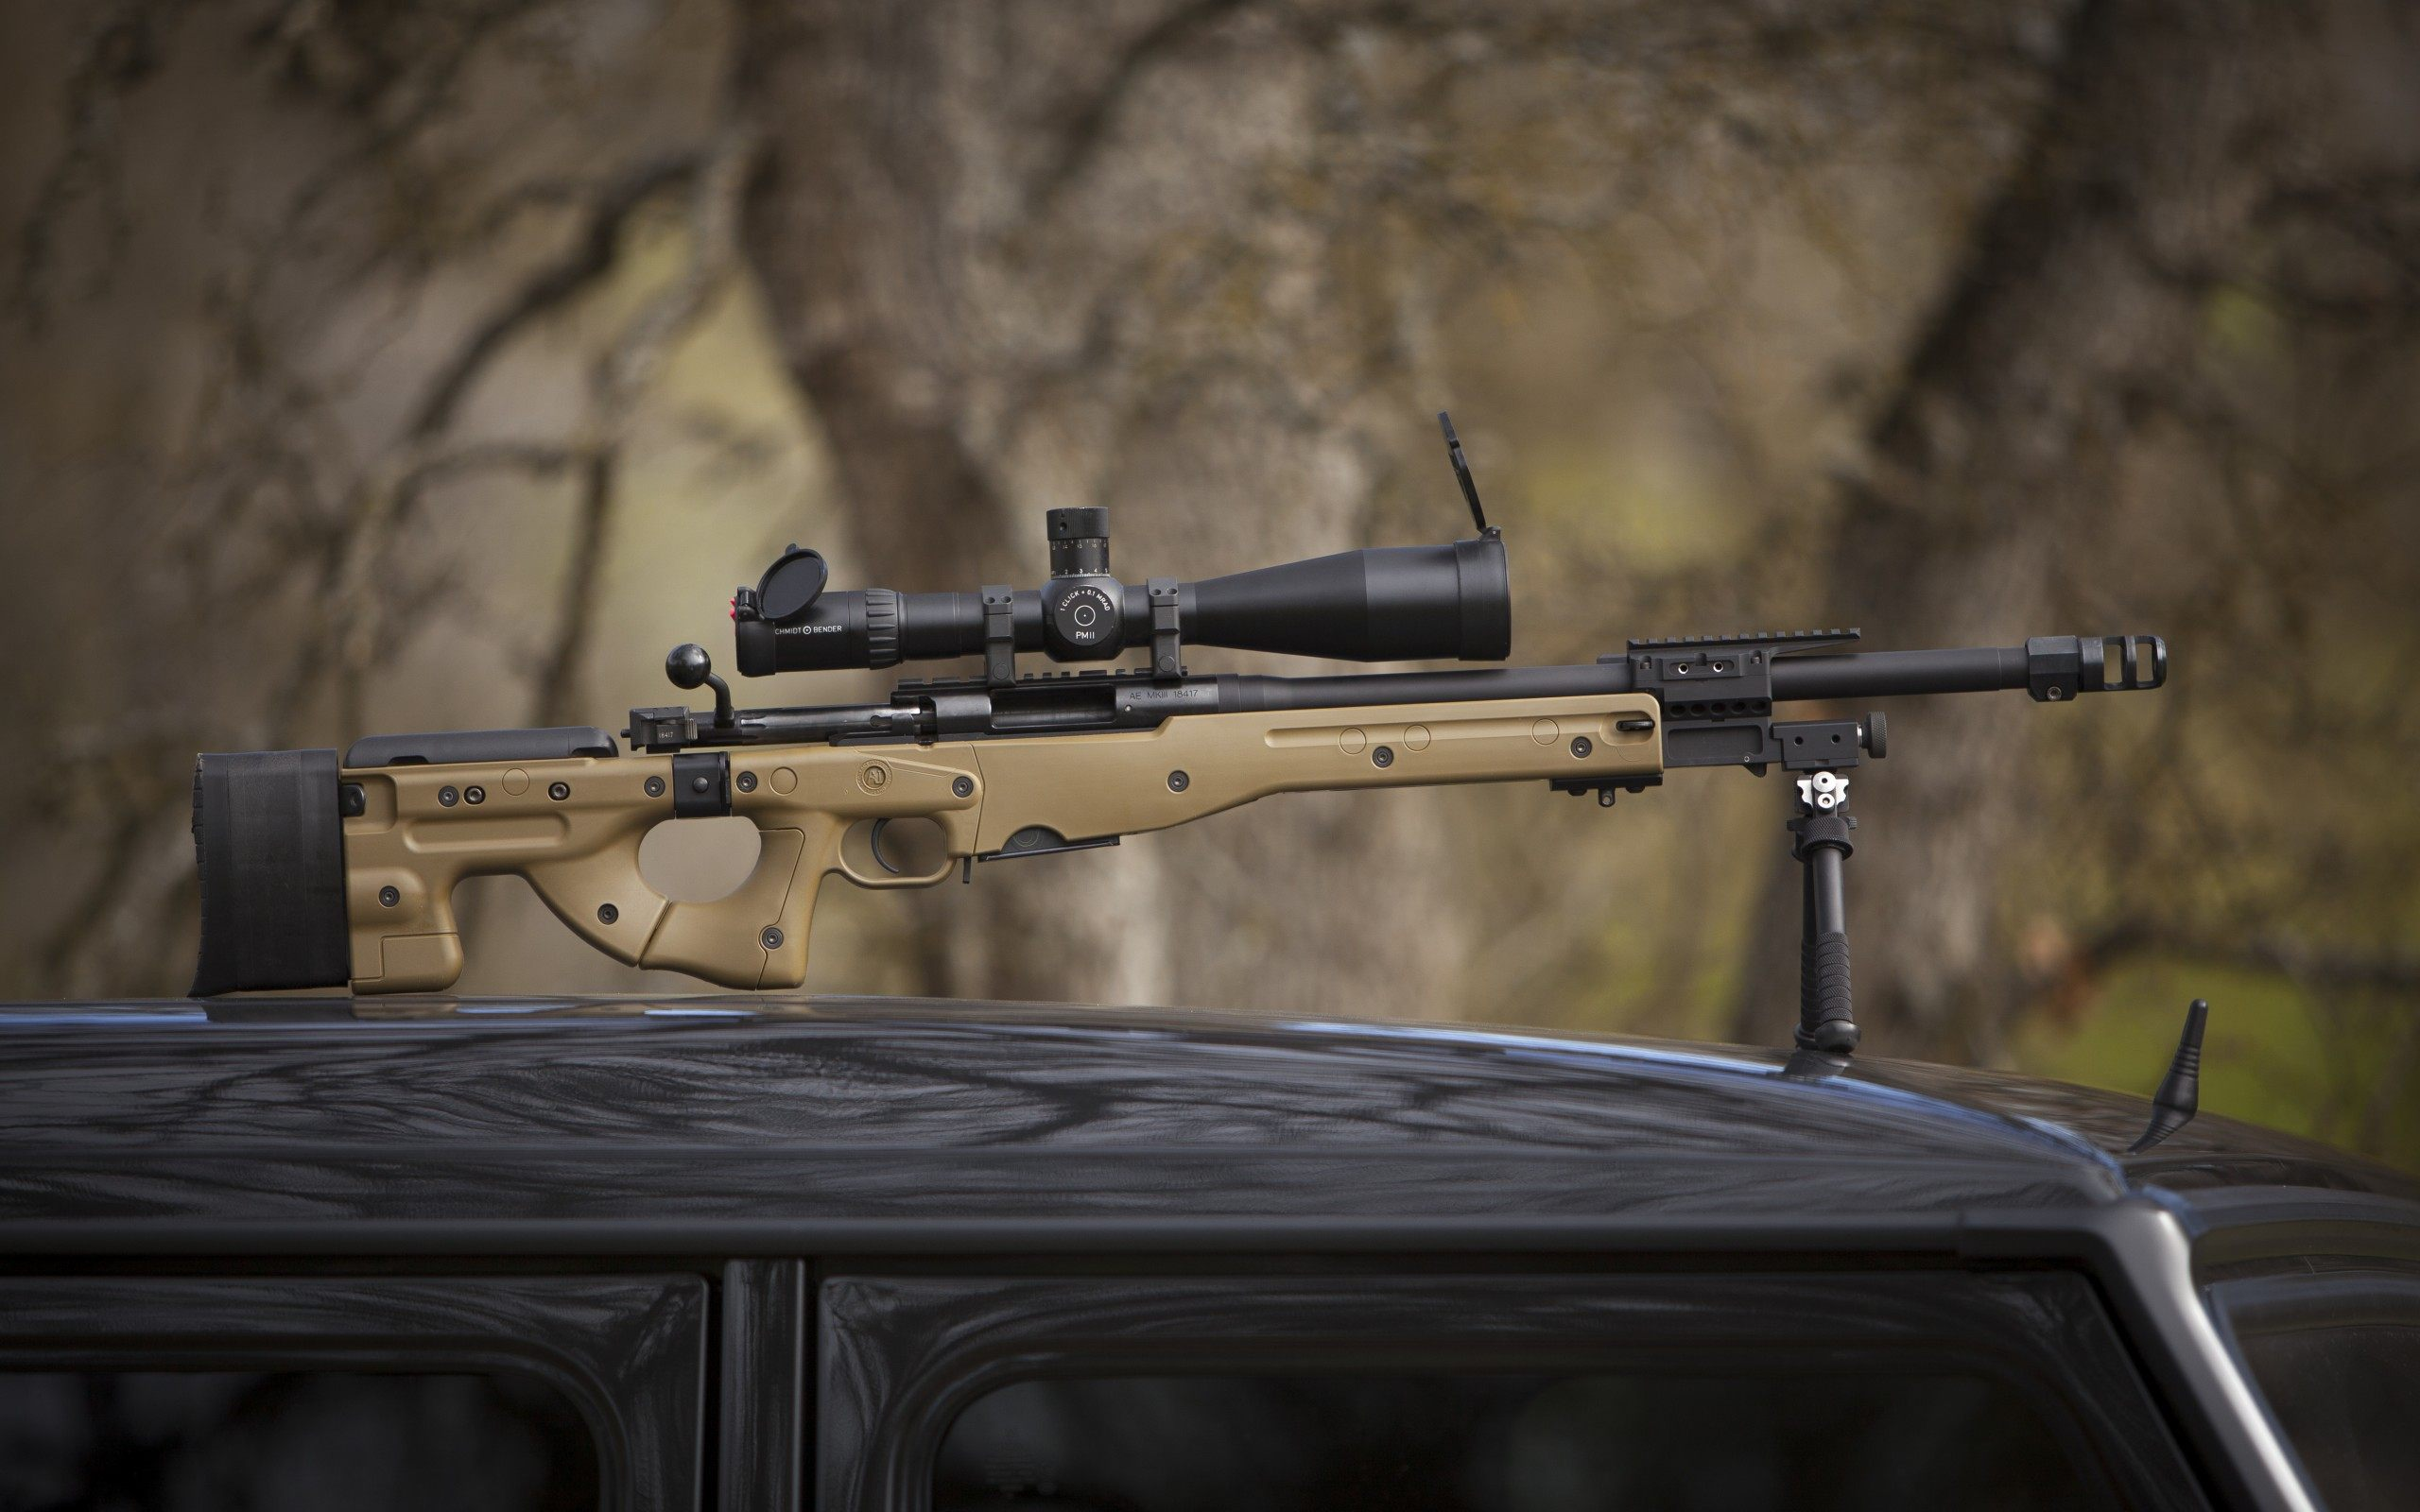 Sniper Rifle Wallpapers 36 images   DodoWallpaper 2560x1600